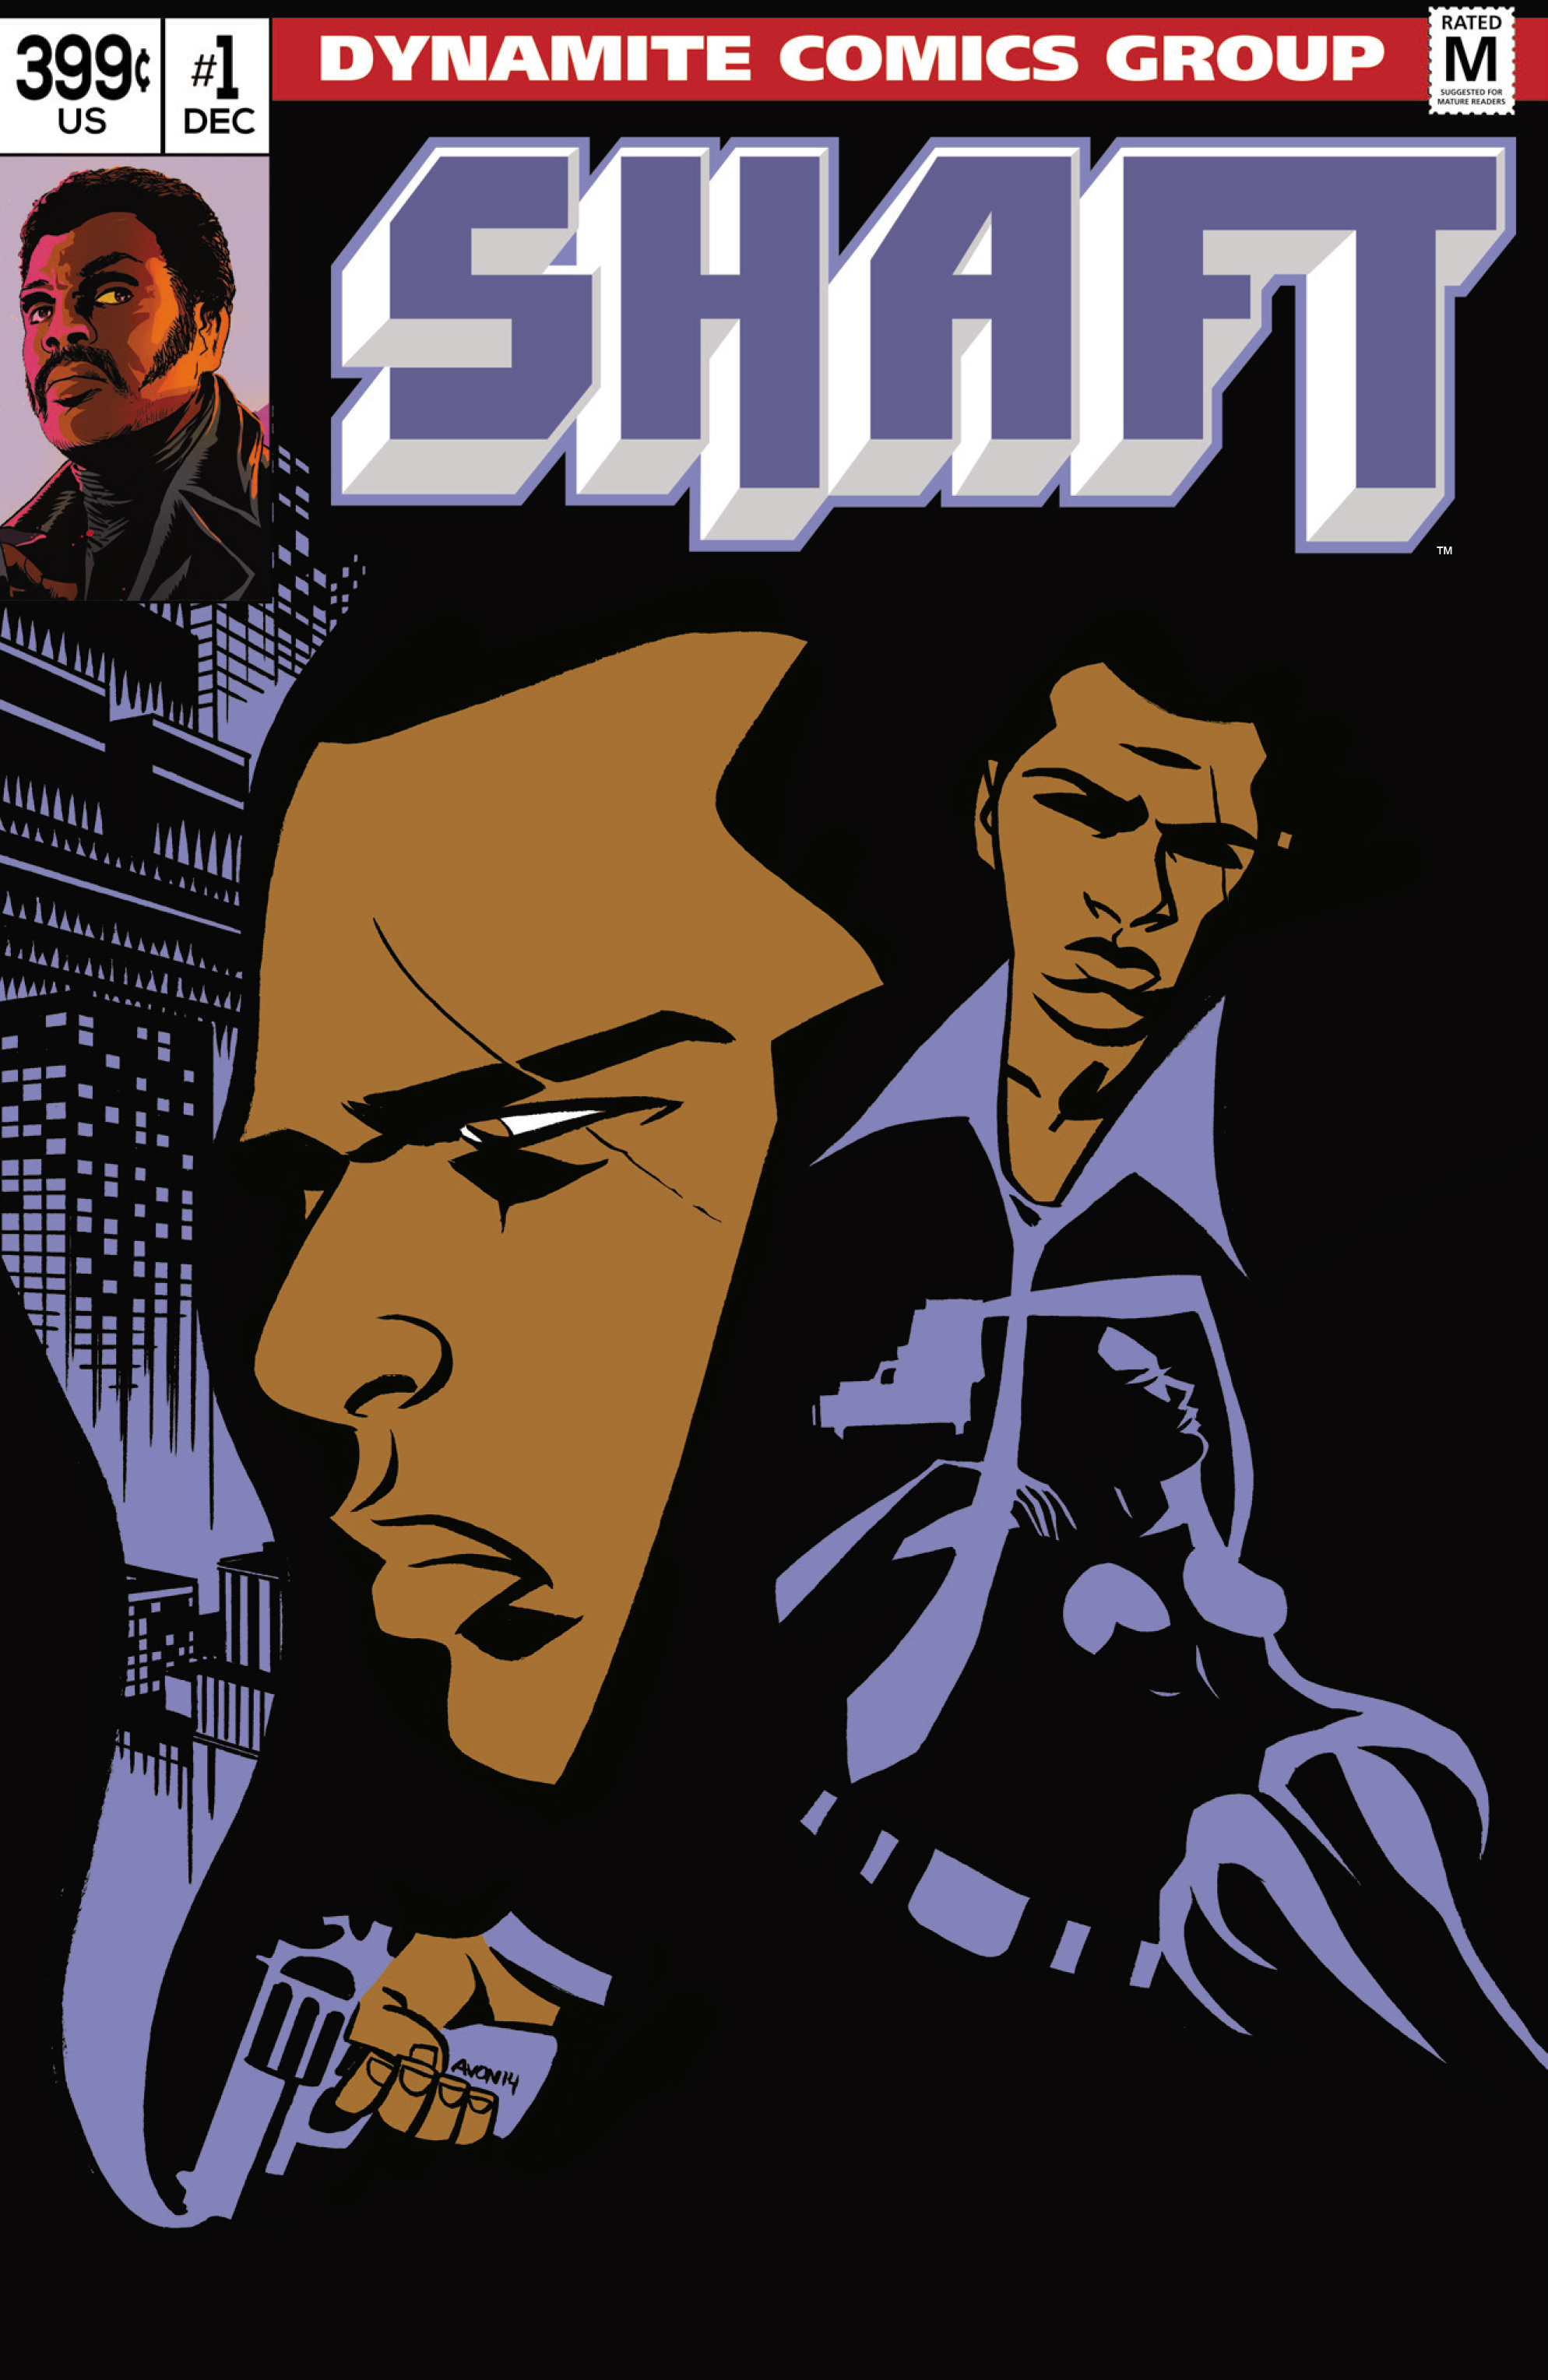 Read online Shaft comic -  Issue #1 - 3